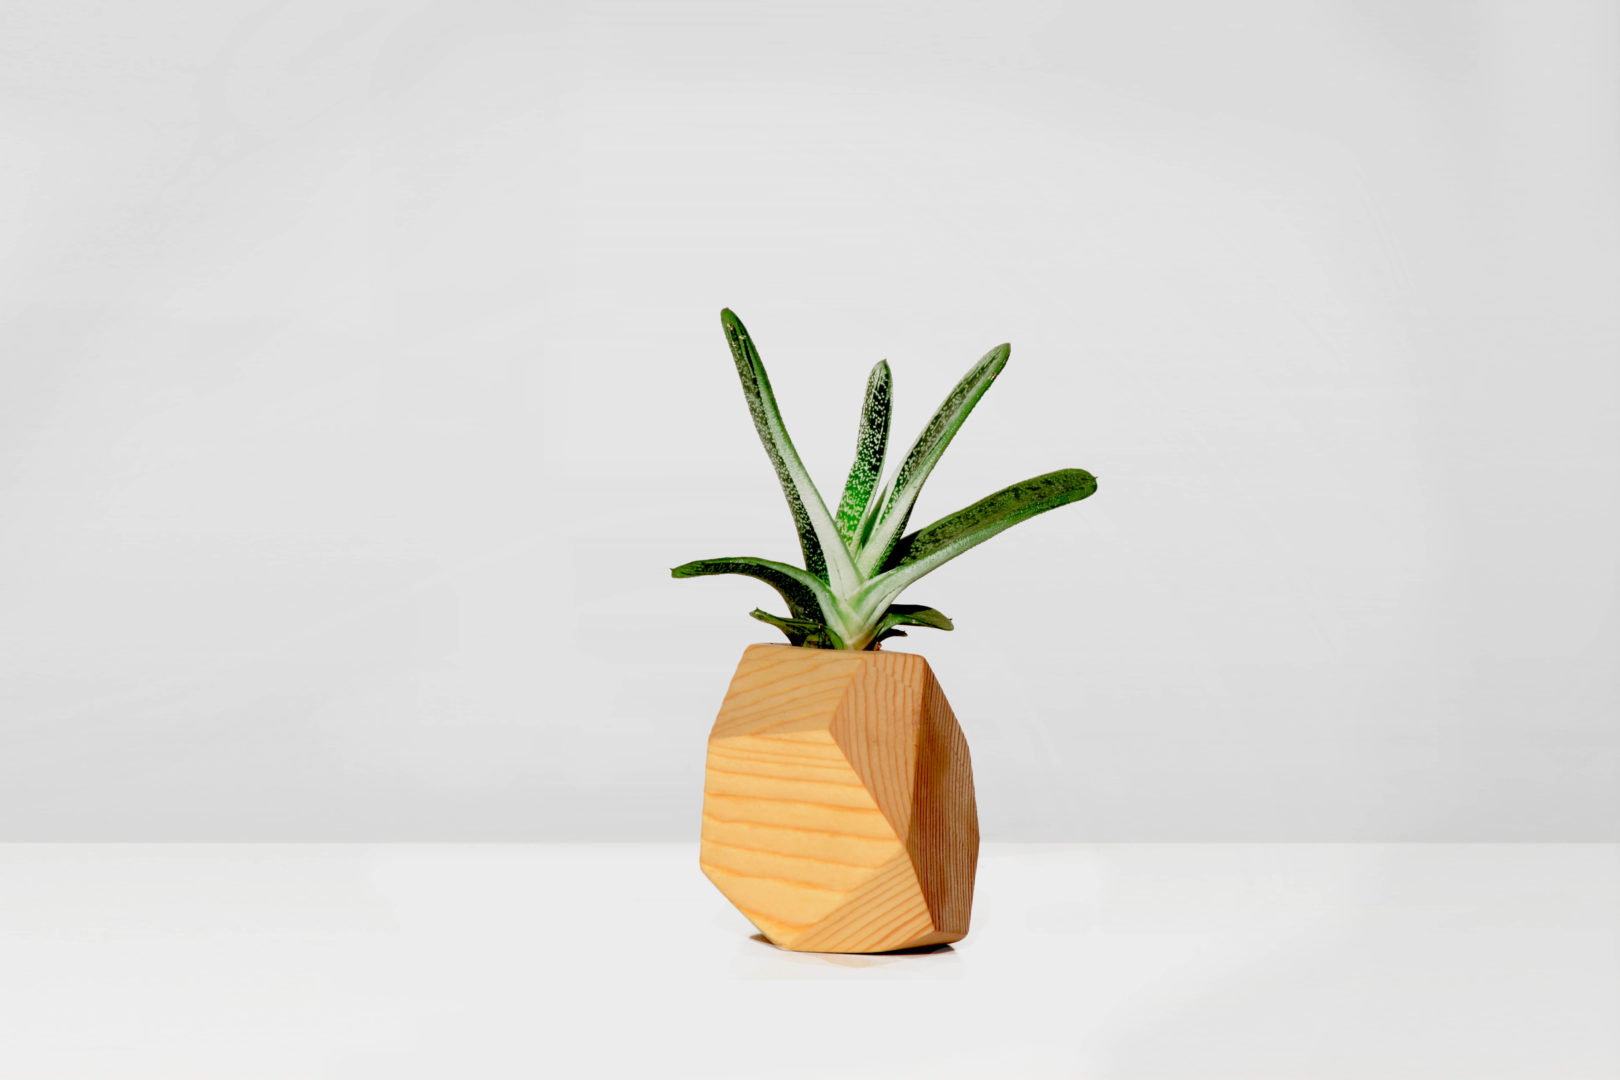 https://www.delapalma.eco/wp-content/uploads/2018/09/geometric-airplant-indiv-small.jpg